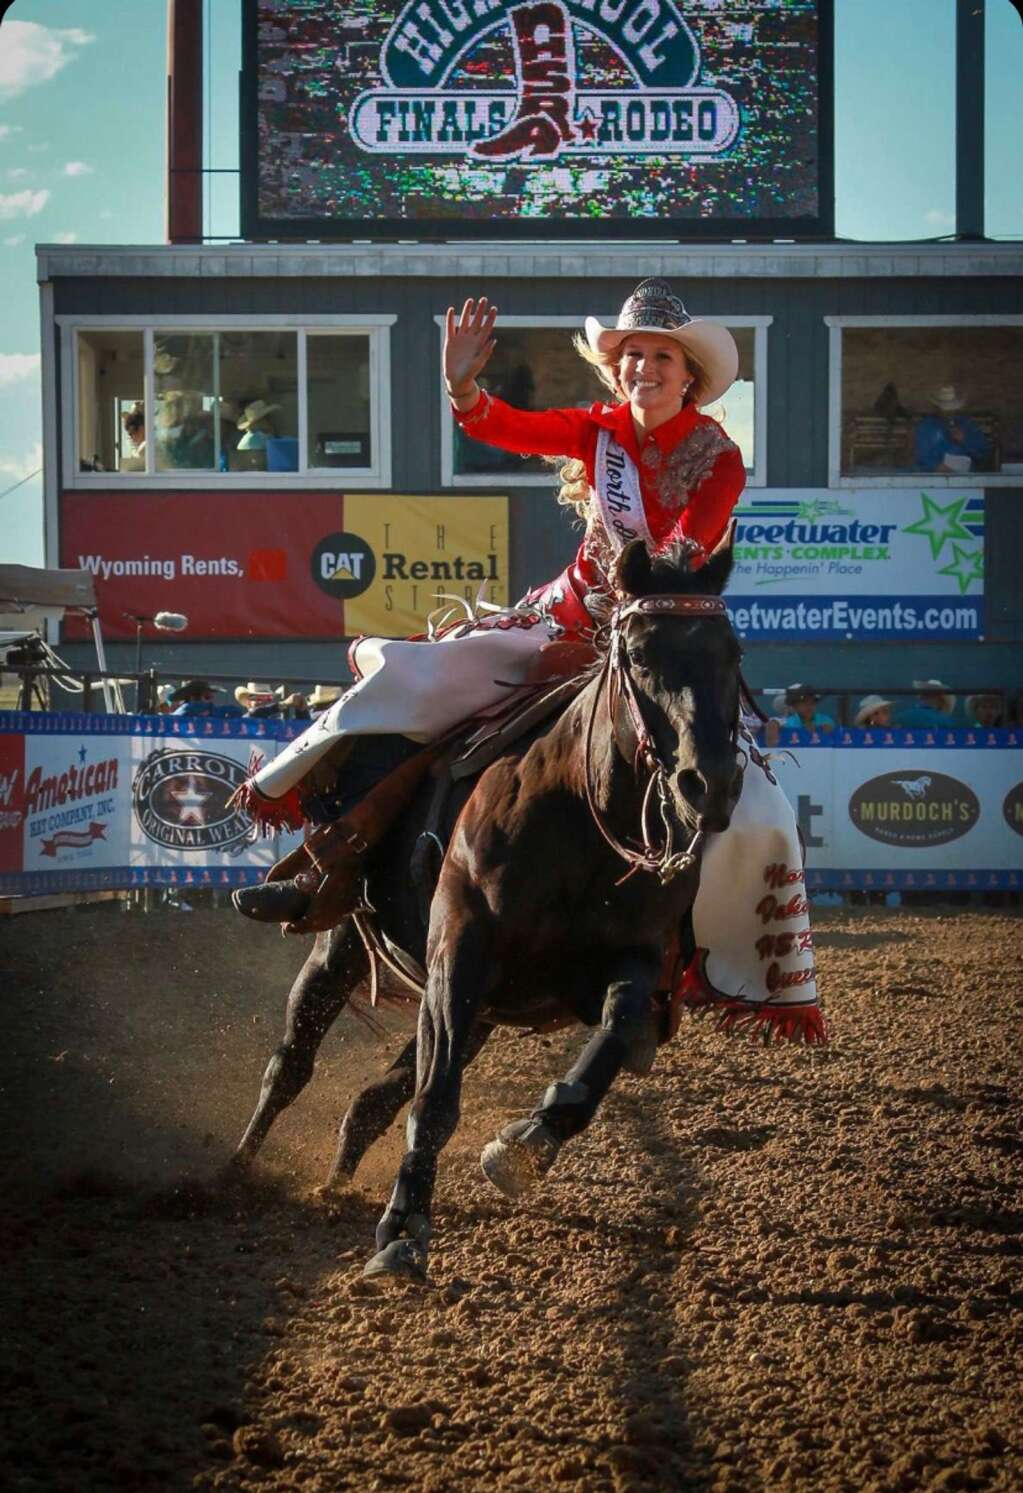 Aspen Hennessy makes a hot lap at the National High School Finals Rodeo as the 2019-20 Miss North Dakota High School Rodeo queen. The Du Lacs, N.D. cowgirl holds her second title, as Miss North Dakota Teen USA. Photo by Craig Maley Photography